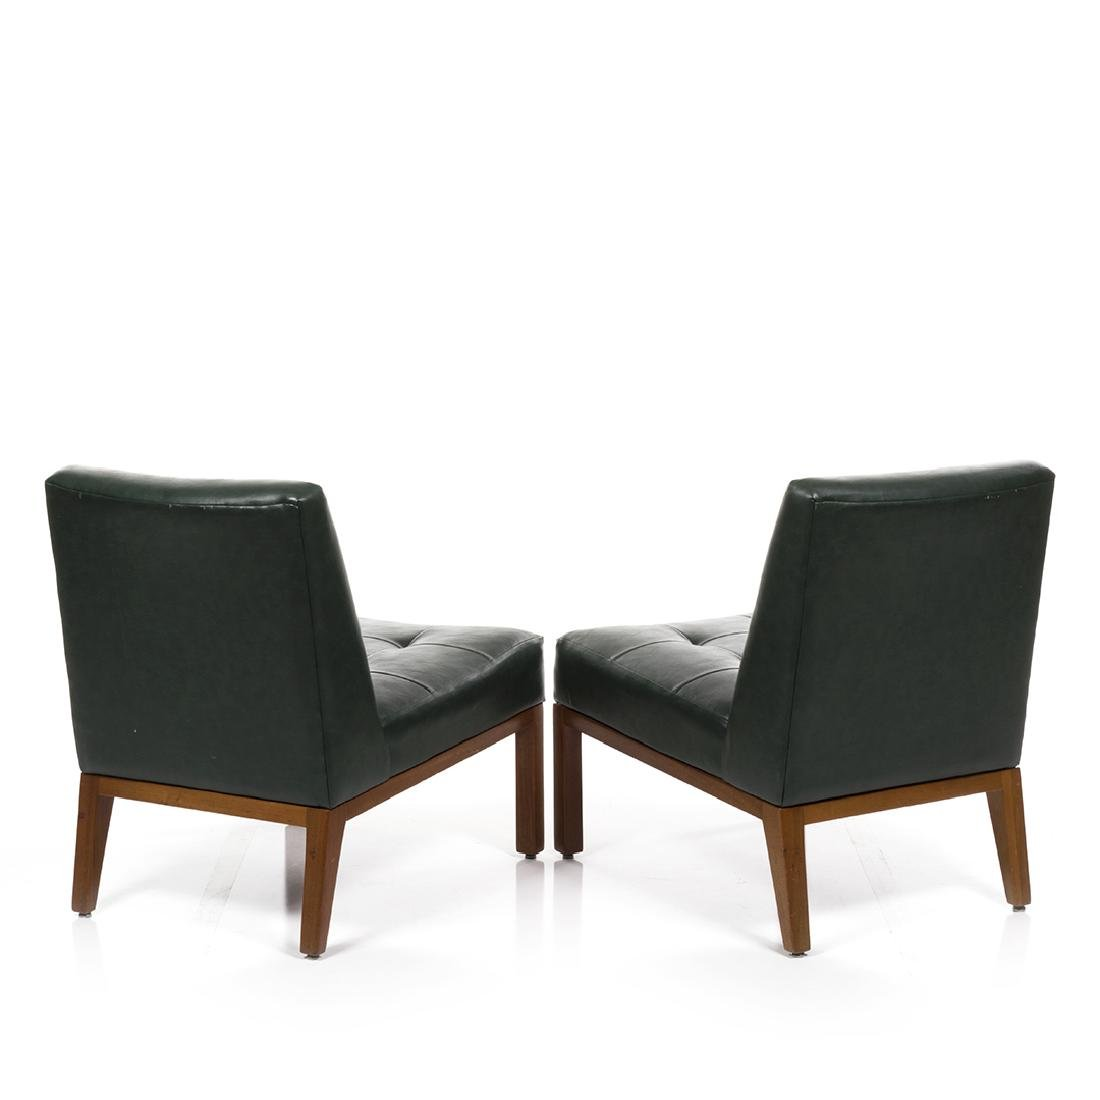 Edward Wormley Slipper Chairs (2) - 3